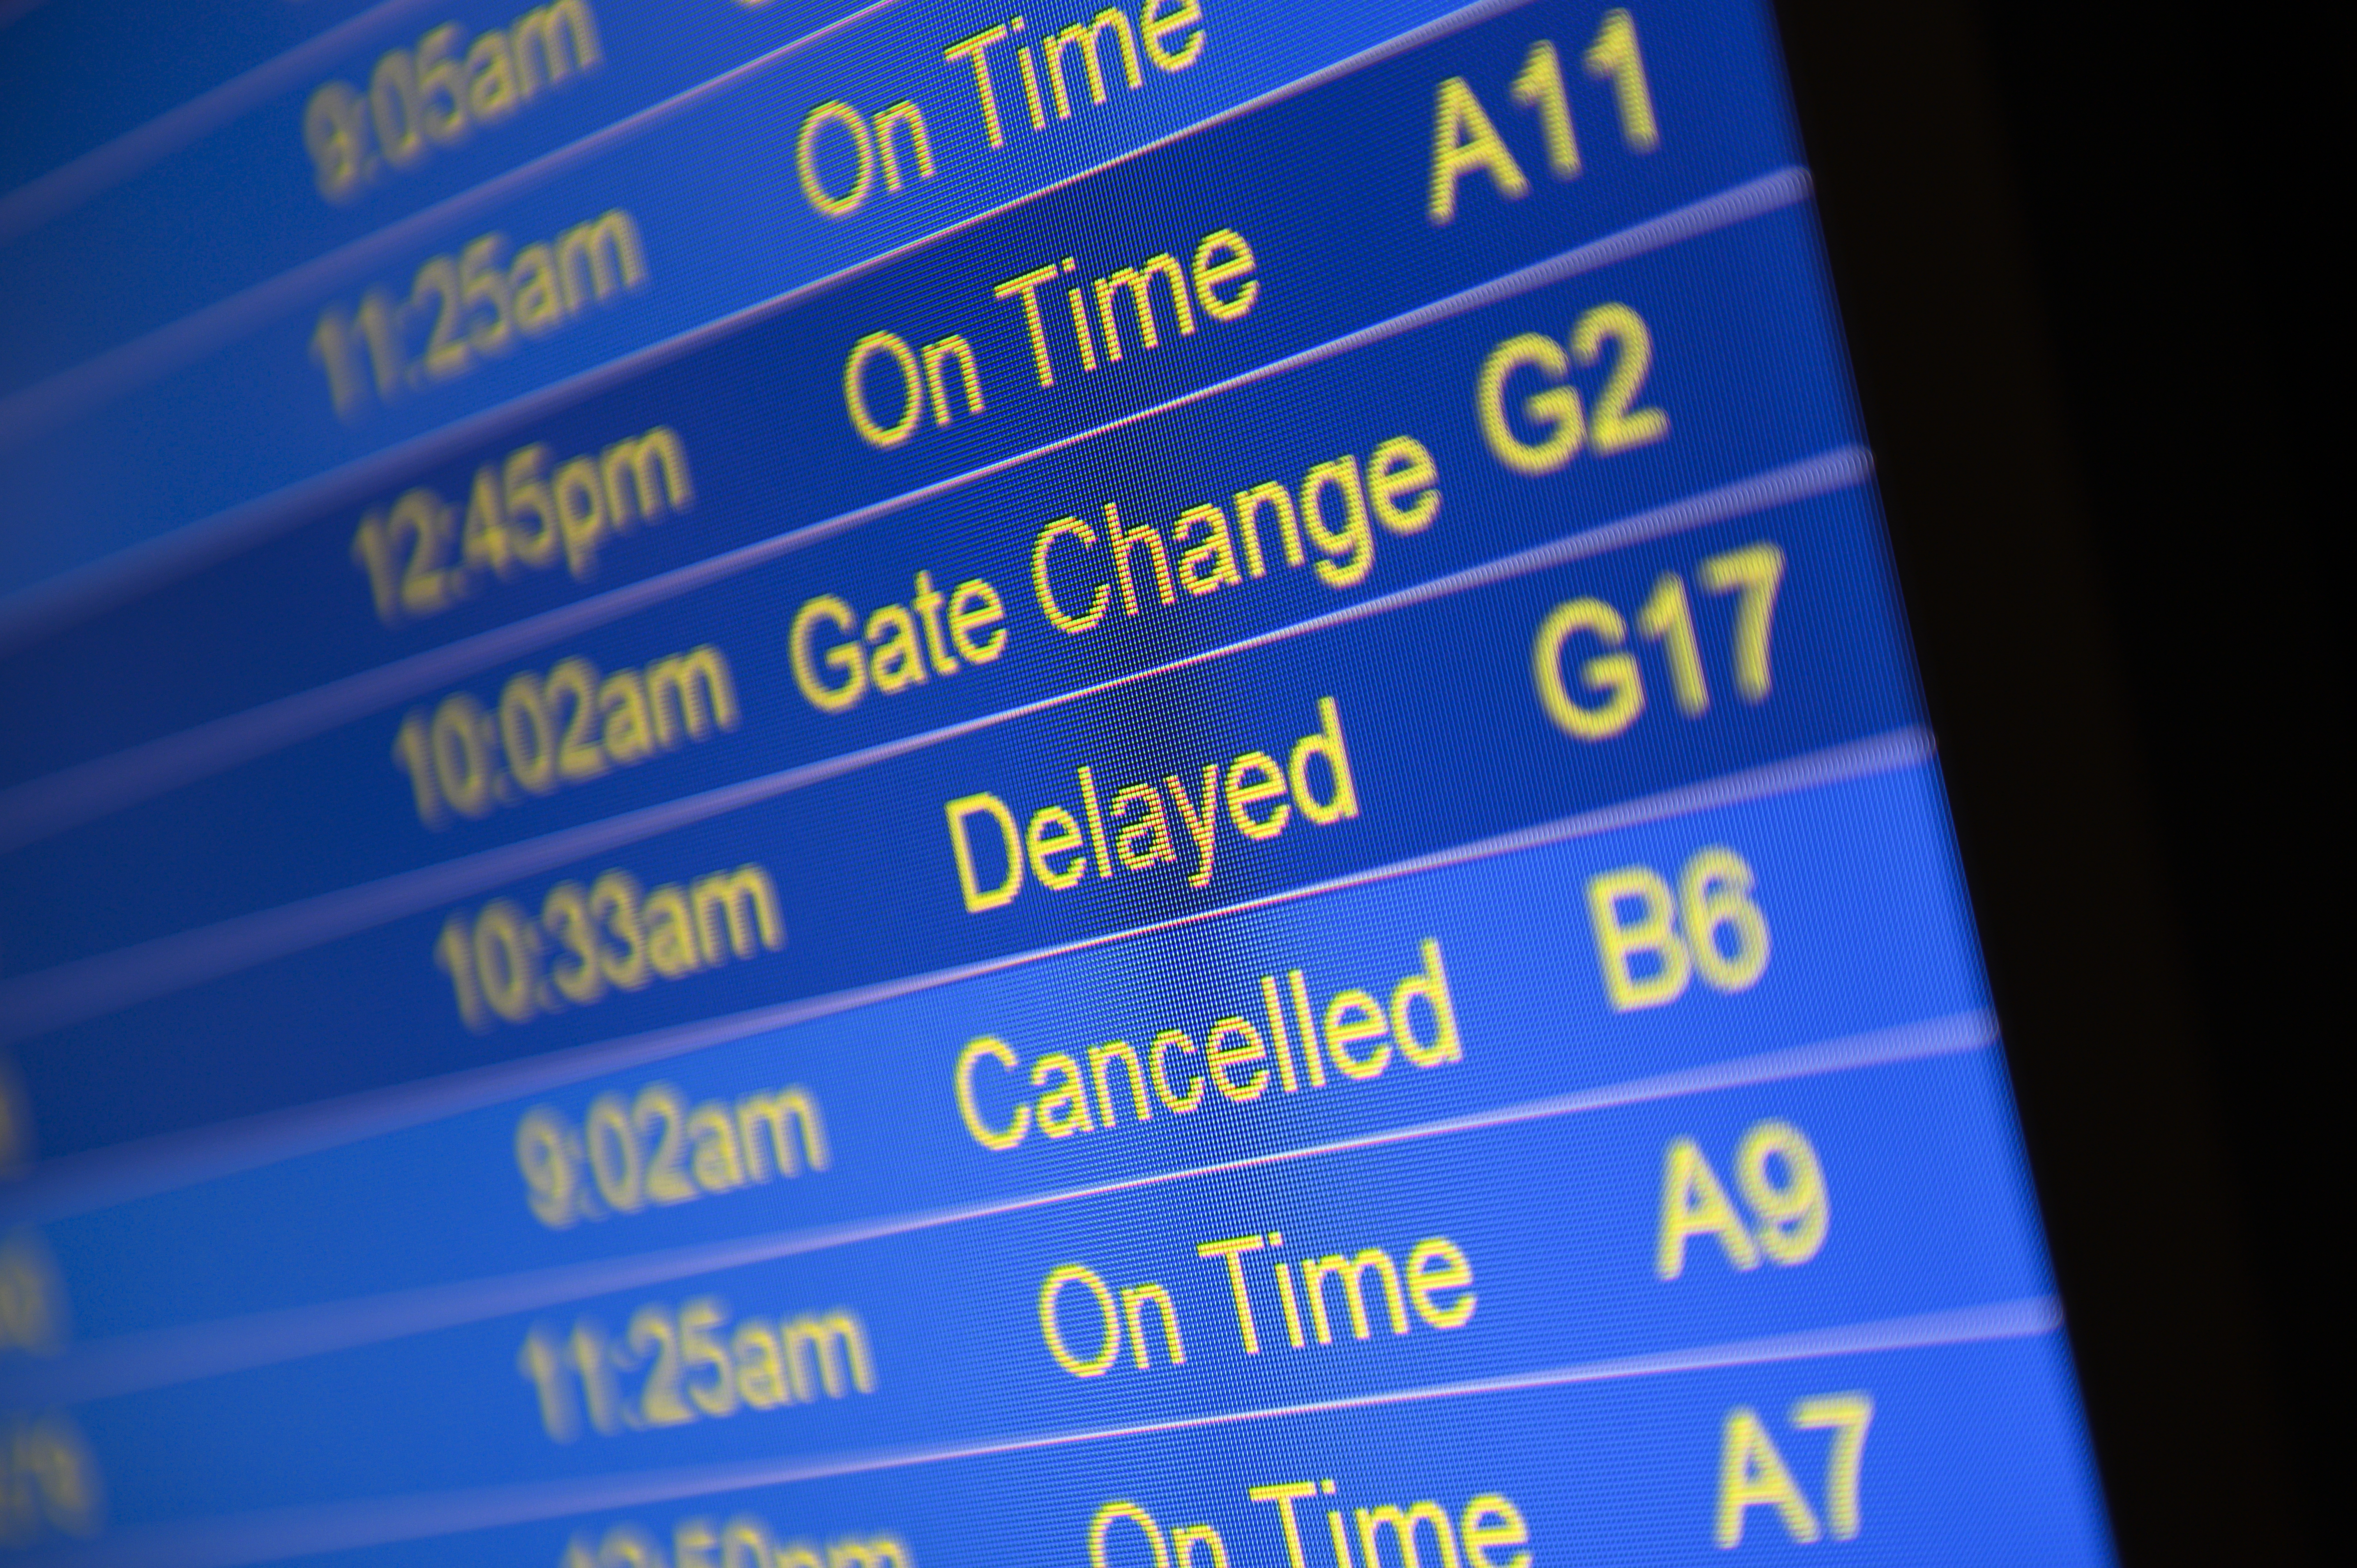 BLOOMINGTON, MN - NOVEMBER 27: Video boards at Minneapolis-St. Paul International Airport display flight statuses after a blizzard struck overnight on November 27, 2019 in Bloomington, Minnesota. Snowfalls neared 12 inches in parts of the state on one of the busiest travel days of the year. (Photo by Stephen Maturen/Getty Images)